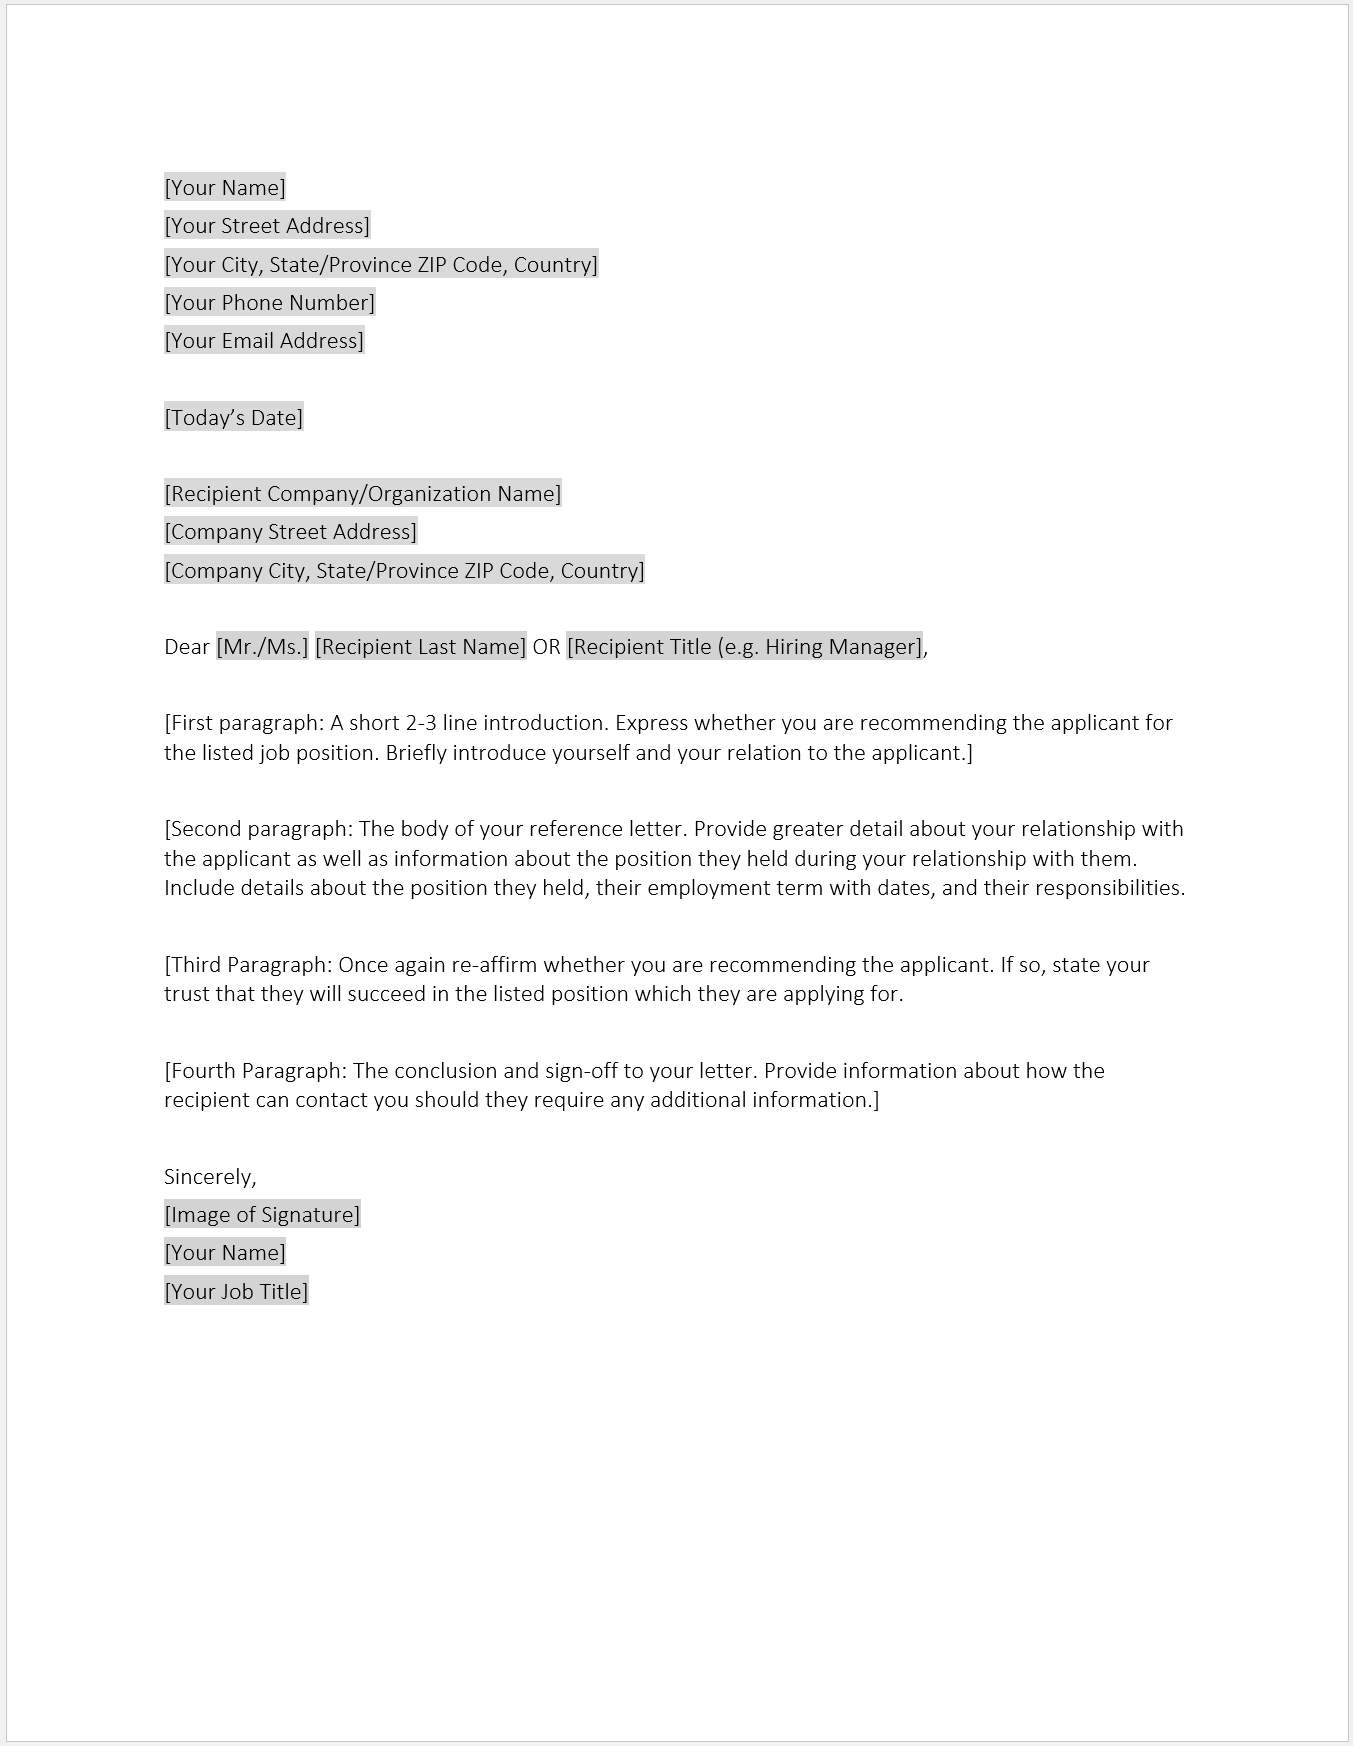 Employment Letter Format In Word from corporatefinanceinstitute.com